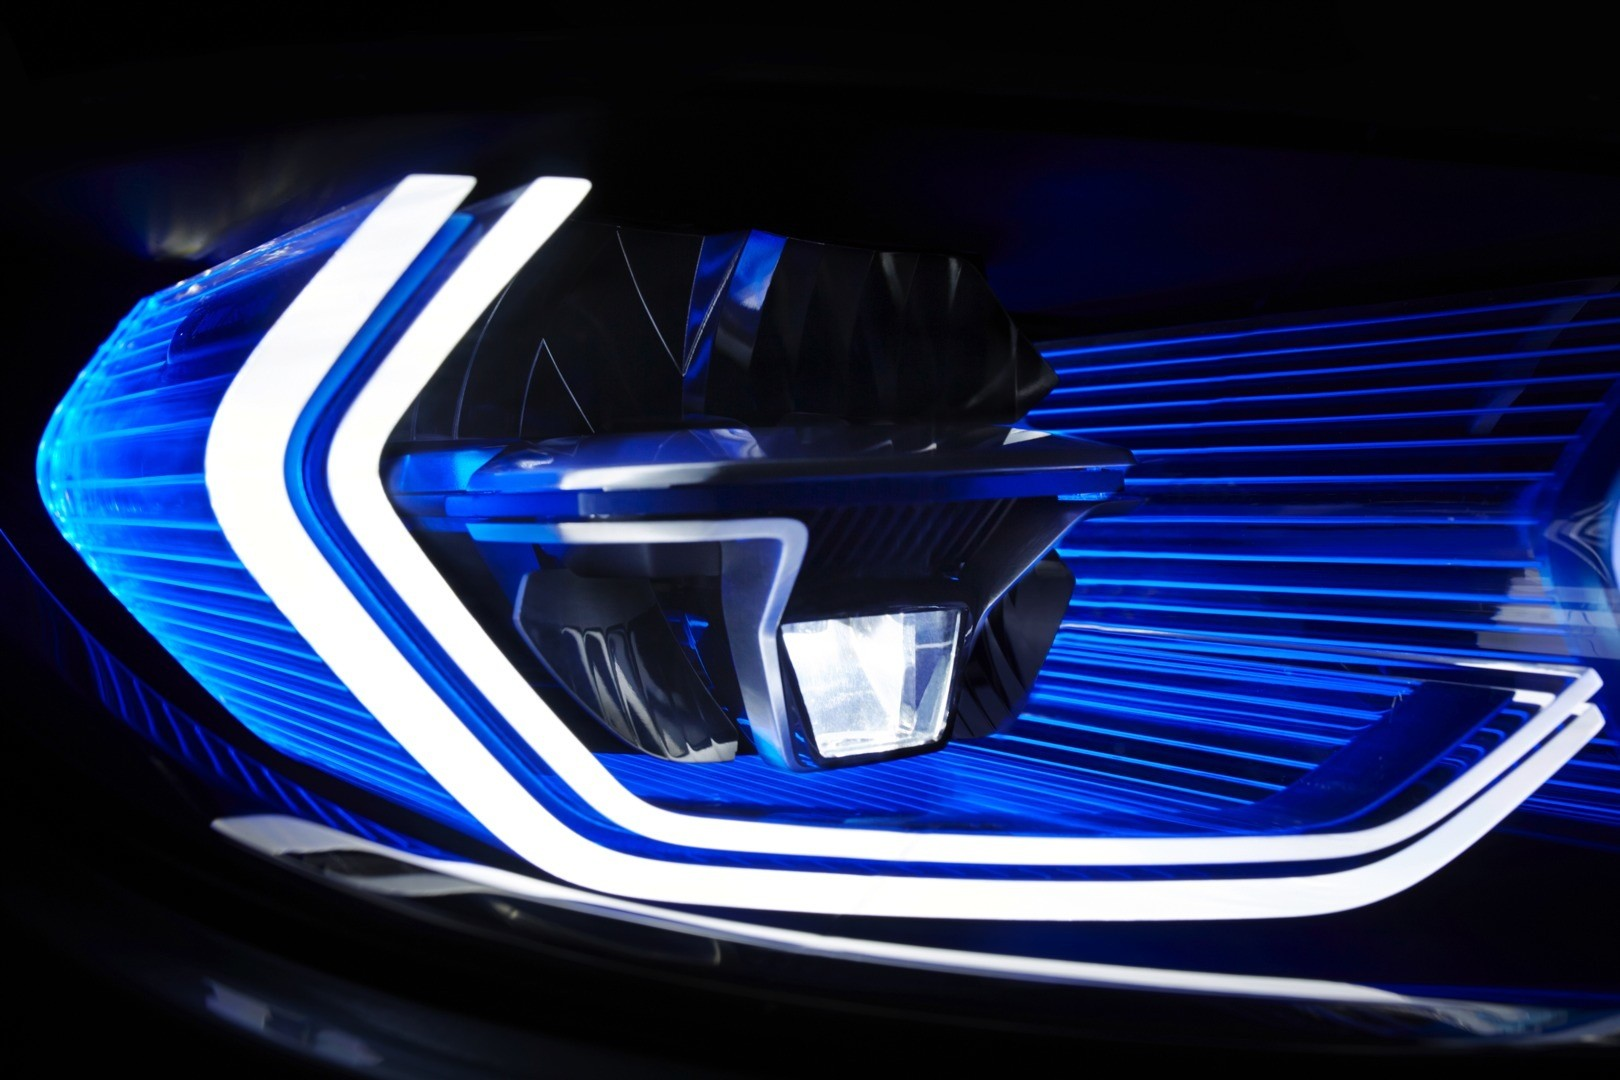 Oled Lights To Be Introduced On Bmw M Model In The Near Future Autoevolution